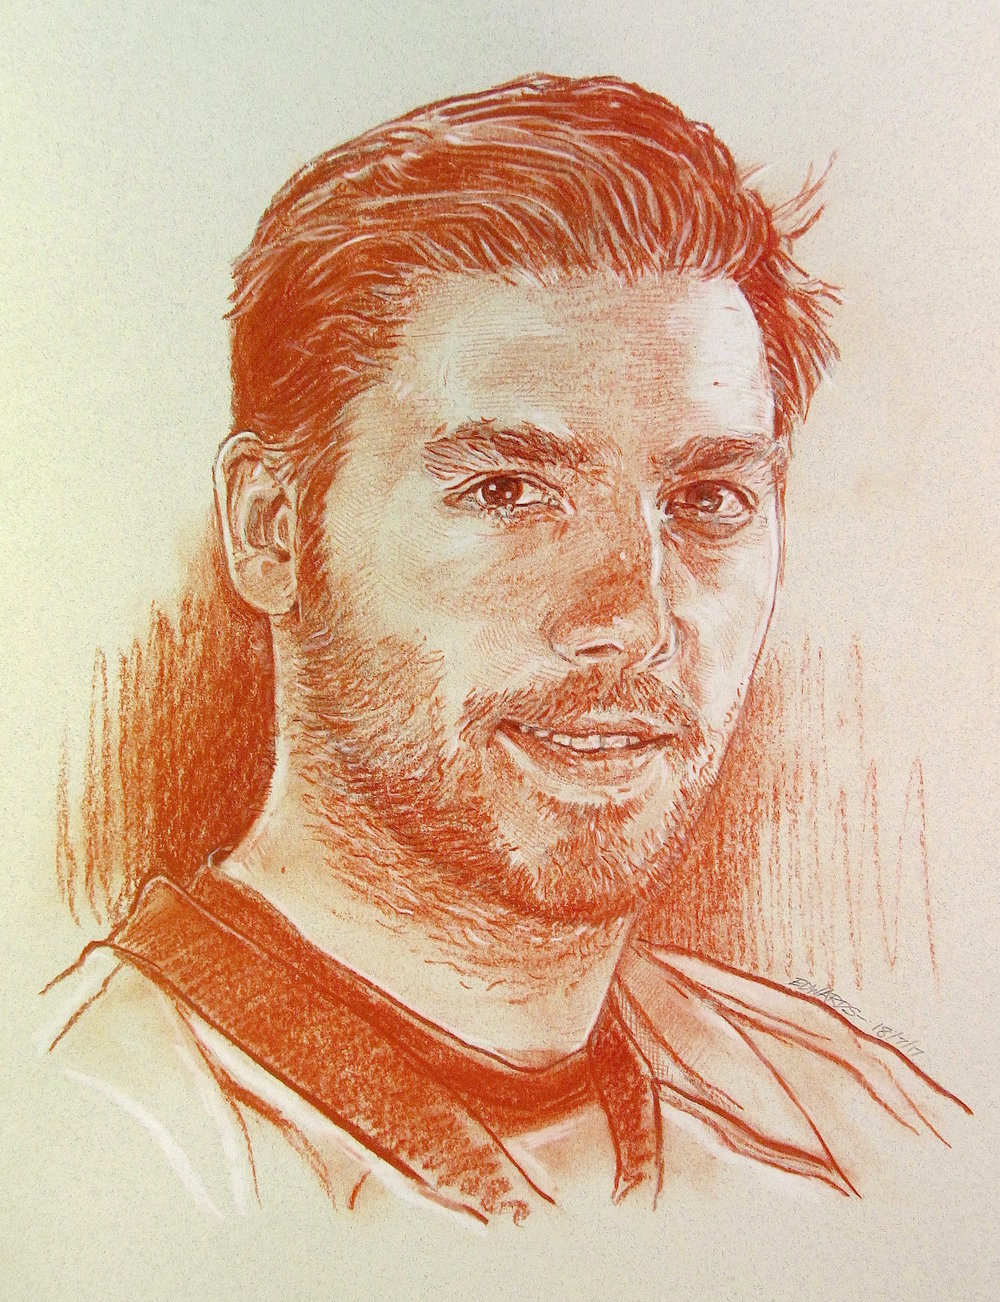 "Kris Letang, Defenseman.   Red sanguine chalk with white highlights, 12"" x 16"""